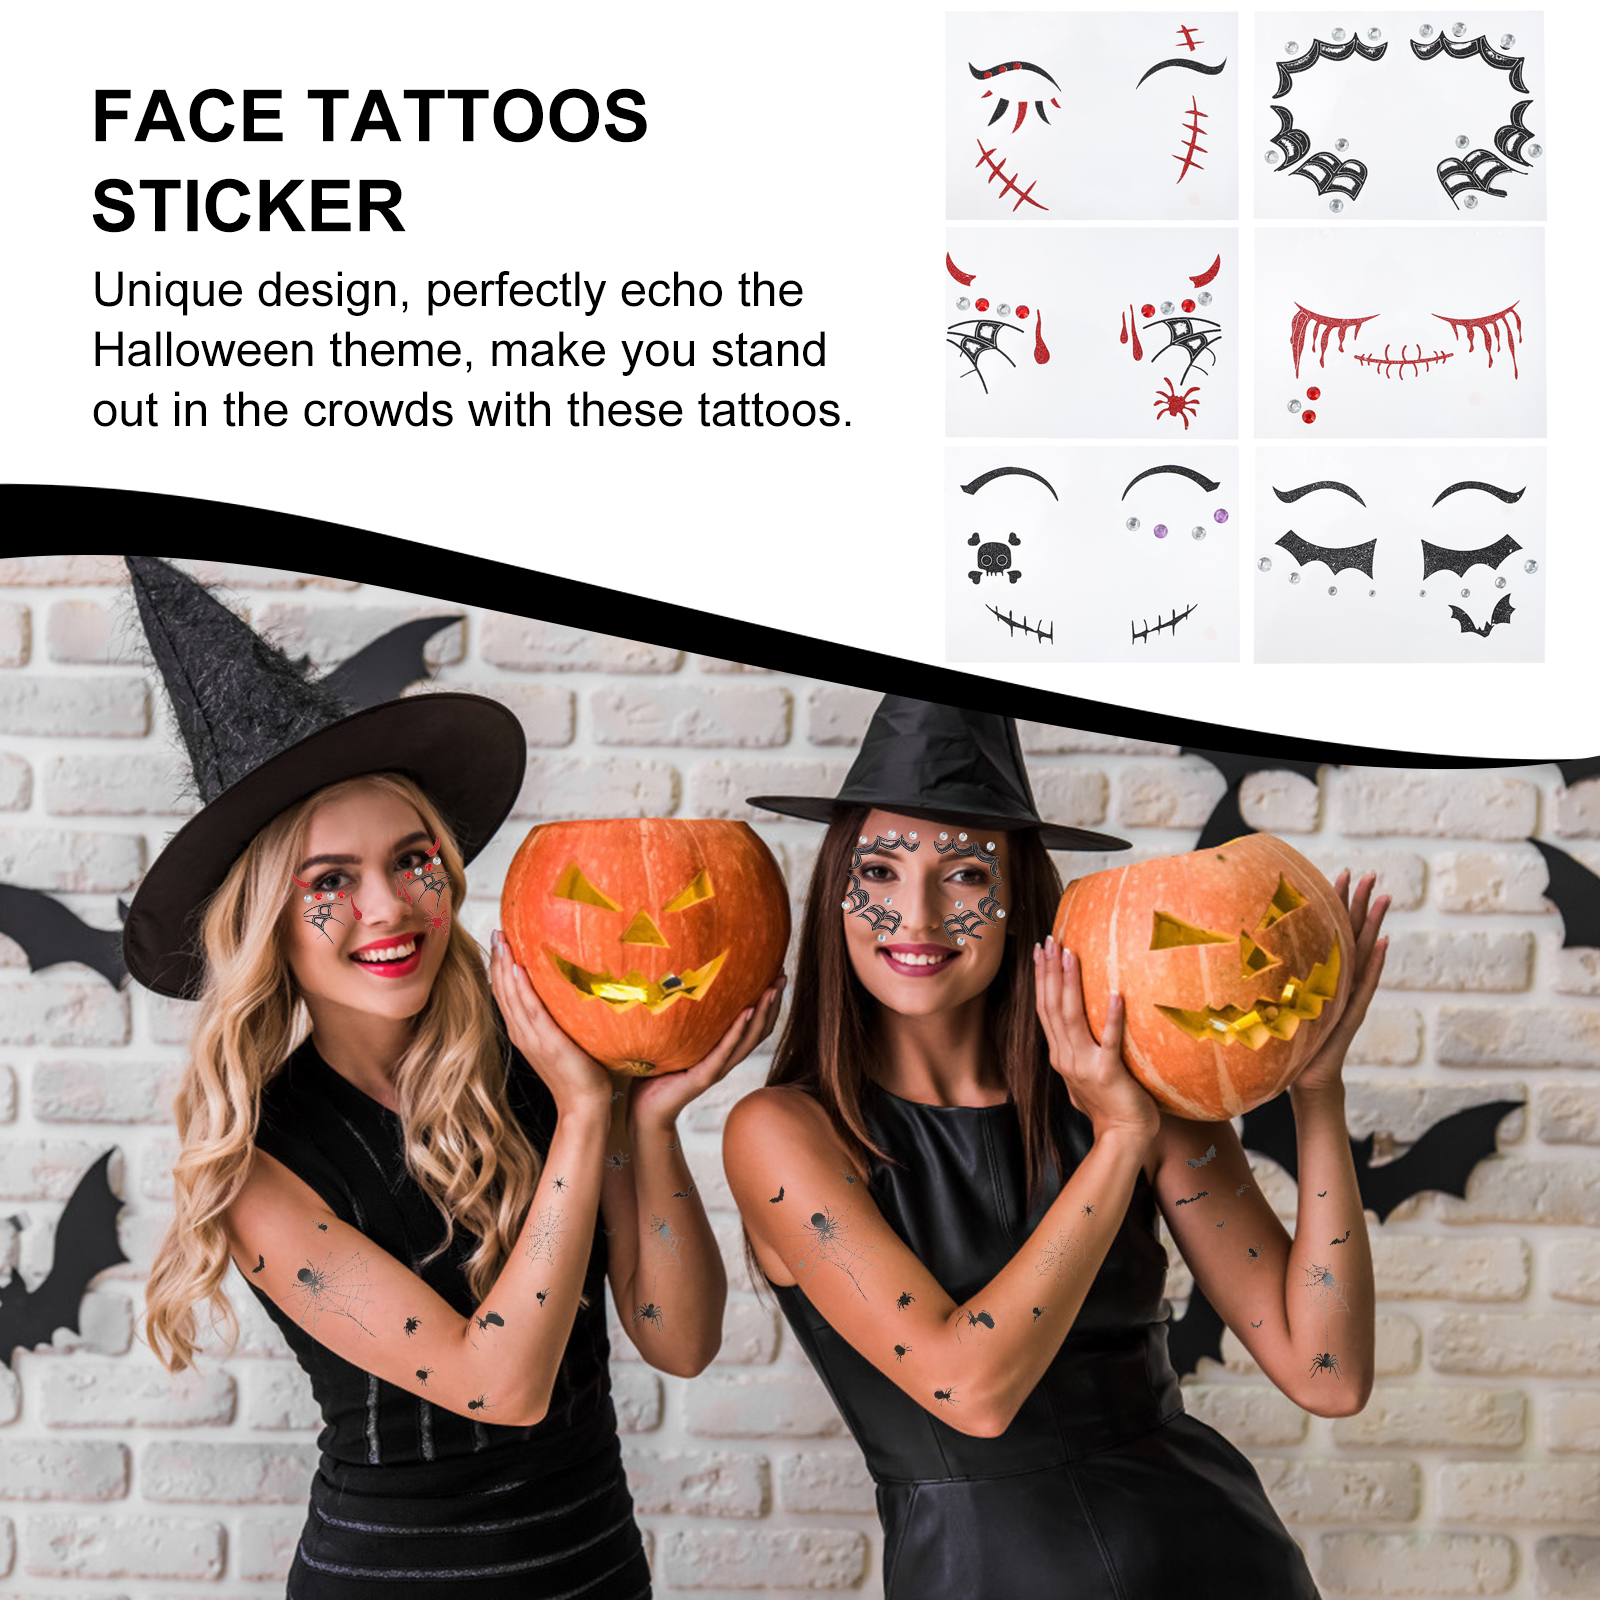 6 Sheets Face Tattoos Sticker Halloween Makeup Tattoo Decoration Tattoo for Festival Party